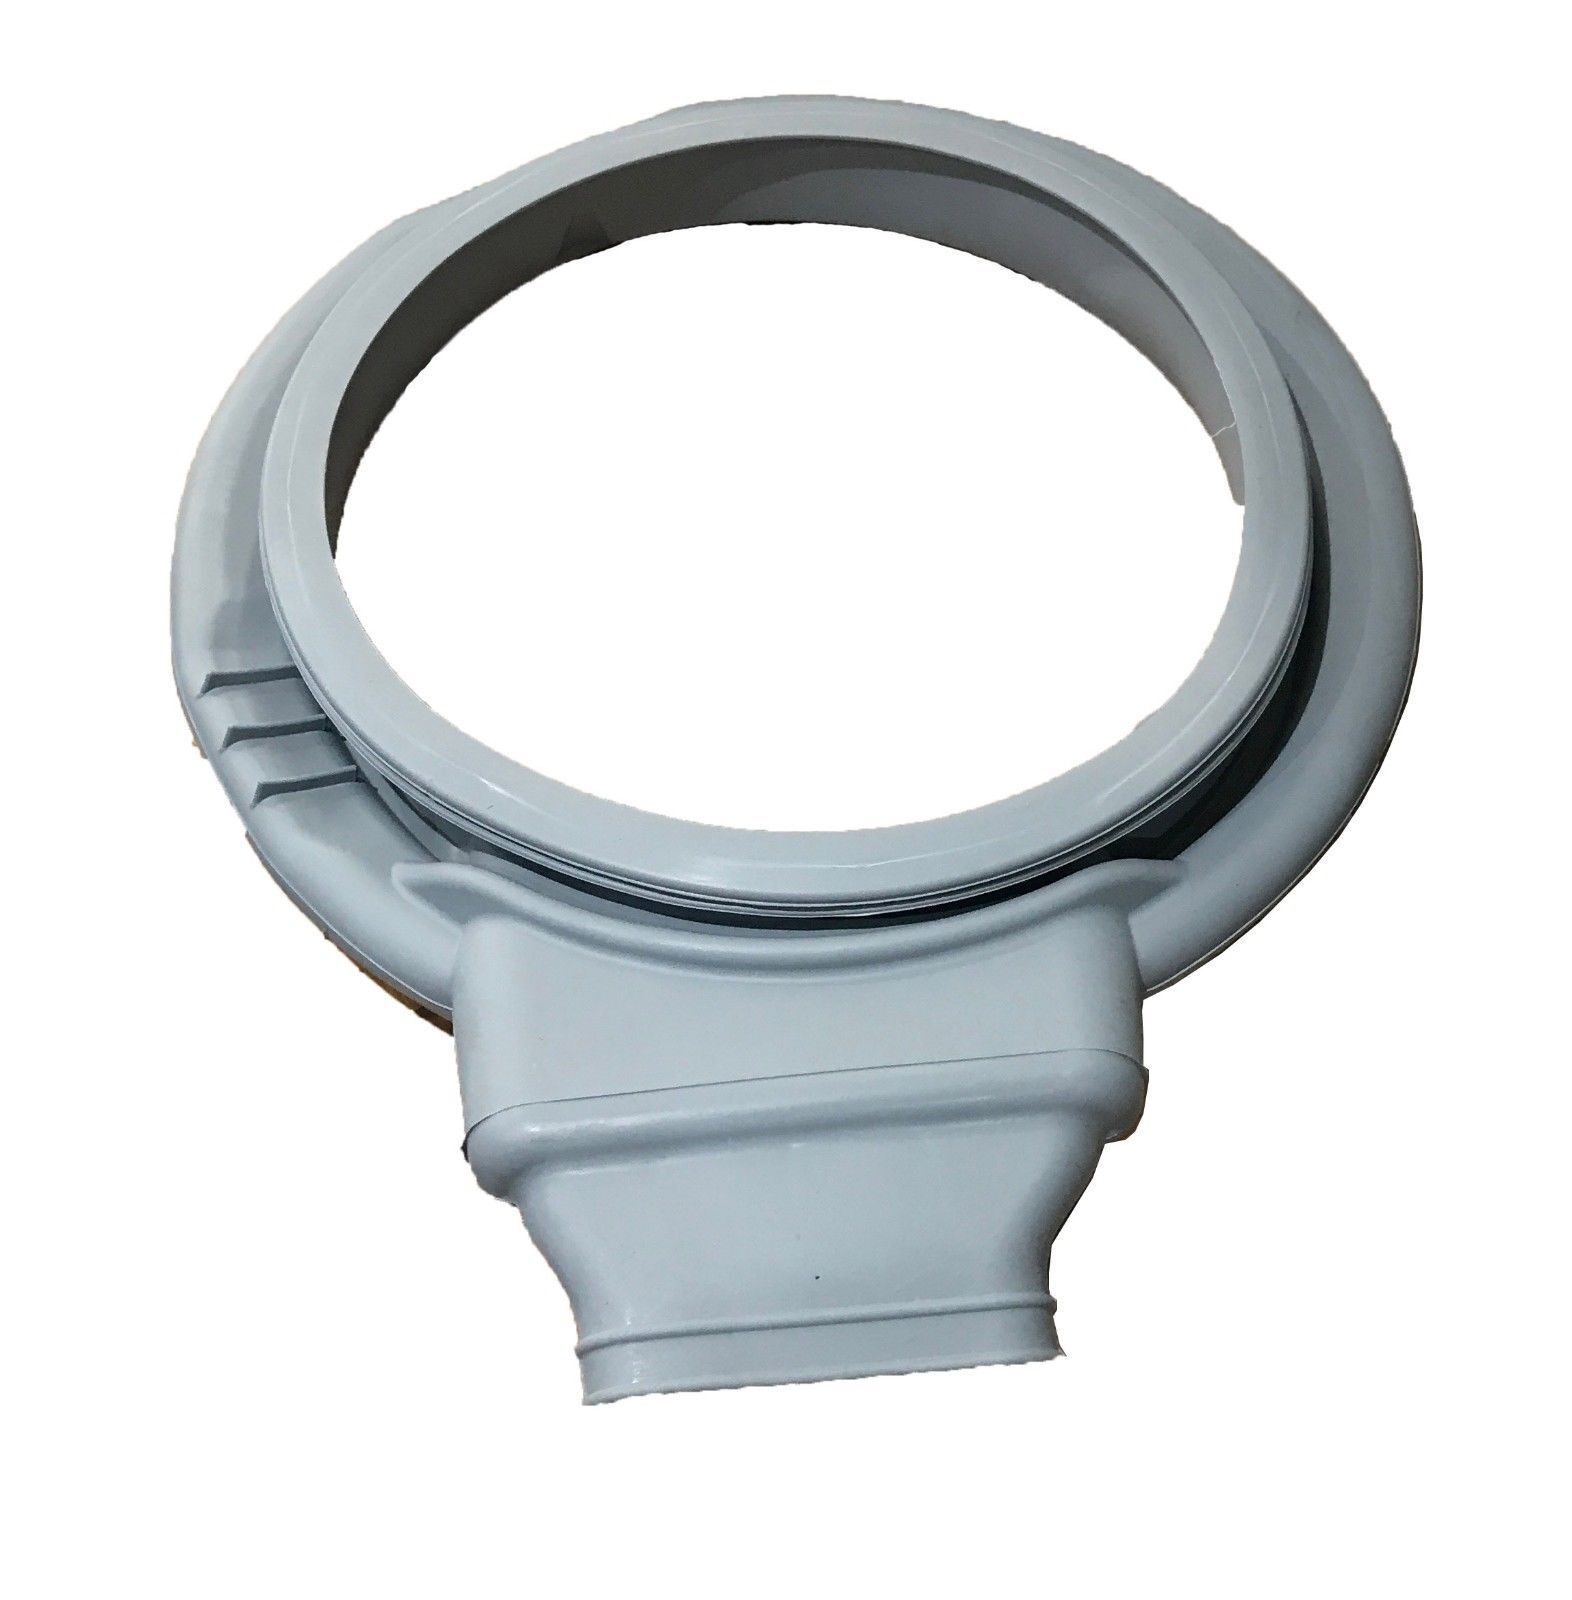 GENUINE Hotpoint & Indesit Washer Dryer Door Seal C00505321 Various Models Below